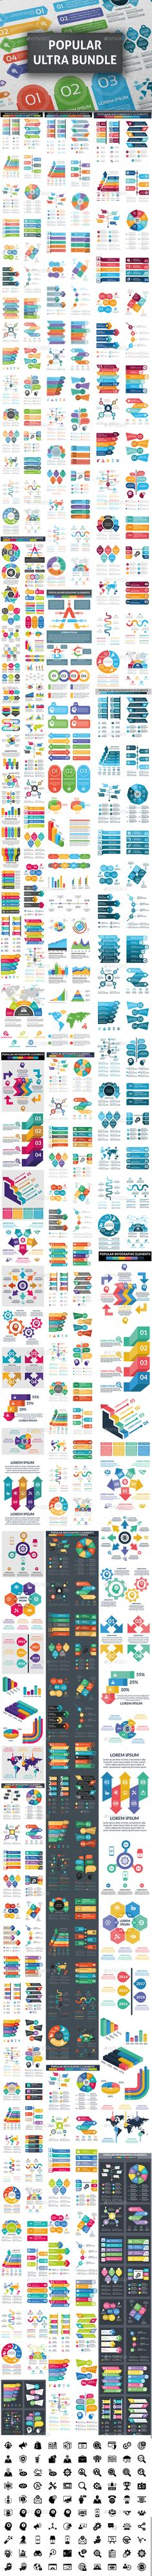 Infographic templates bundle | Pinterest | Powerpoint free, Free ...